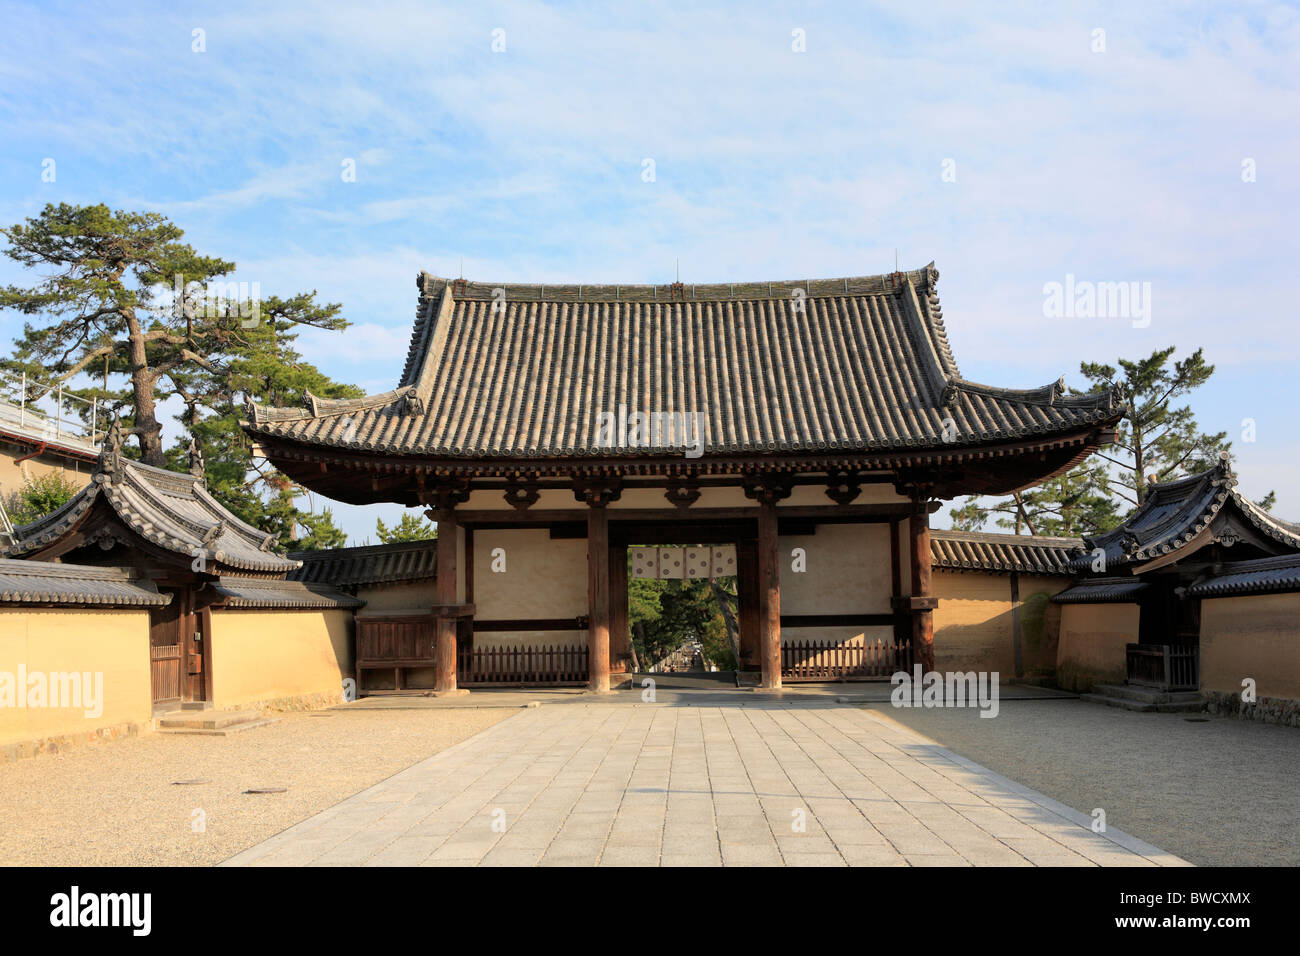 Horyu-ji, Ikaruga (near Nara), Japan - Stock Image